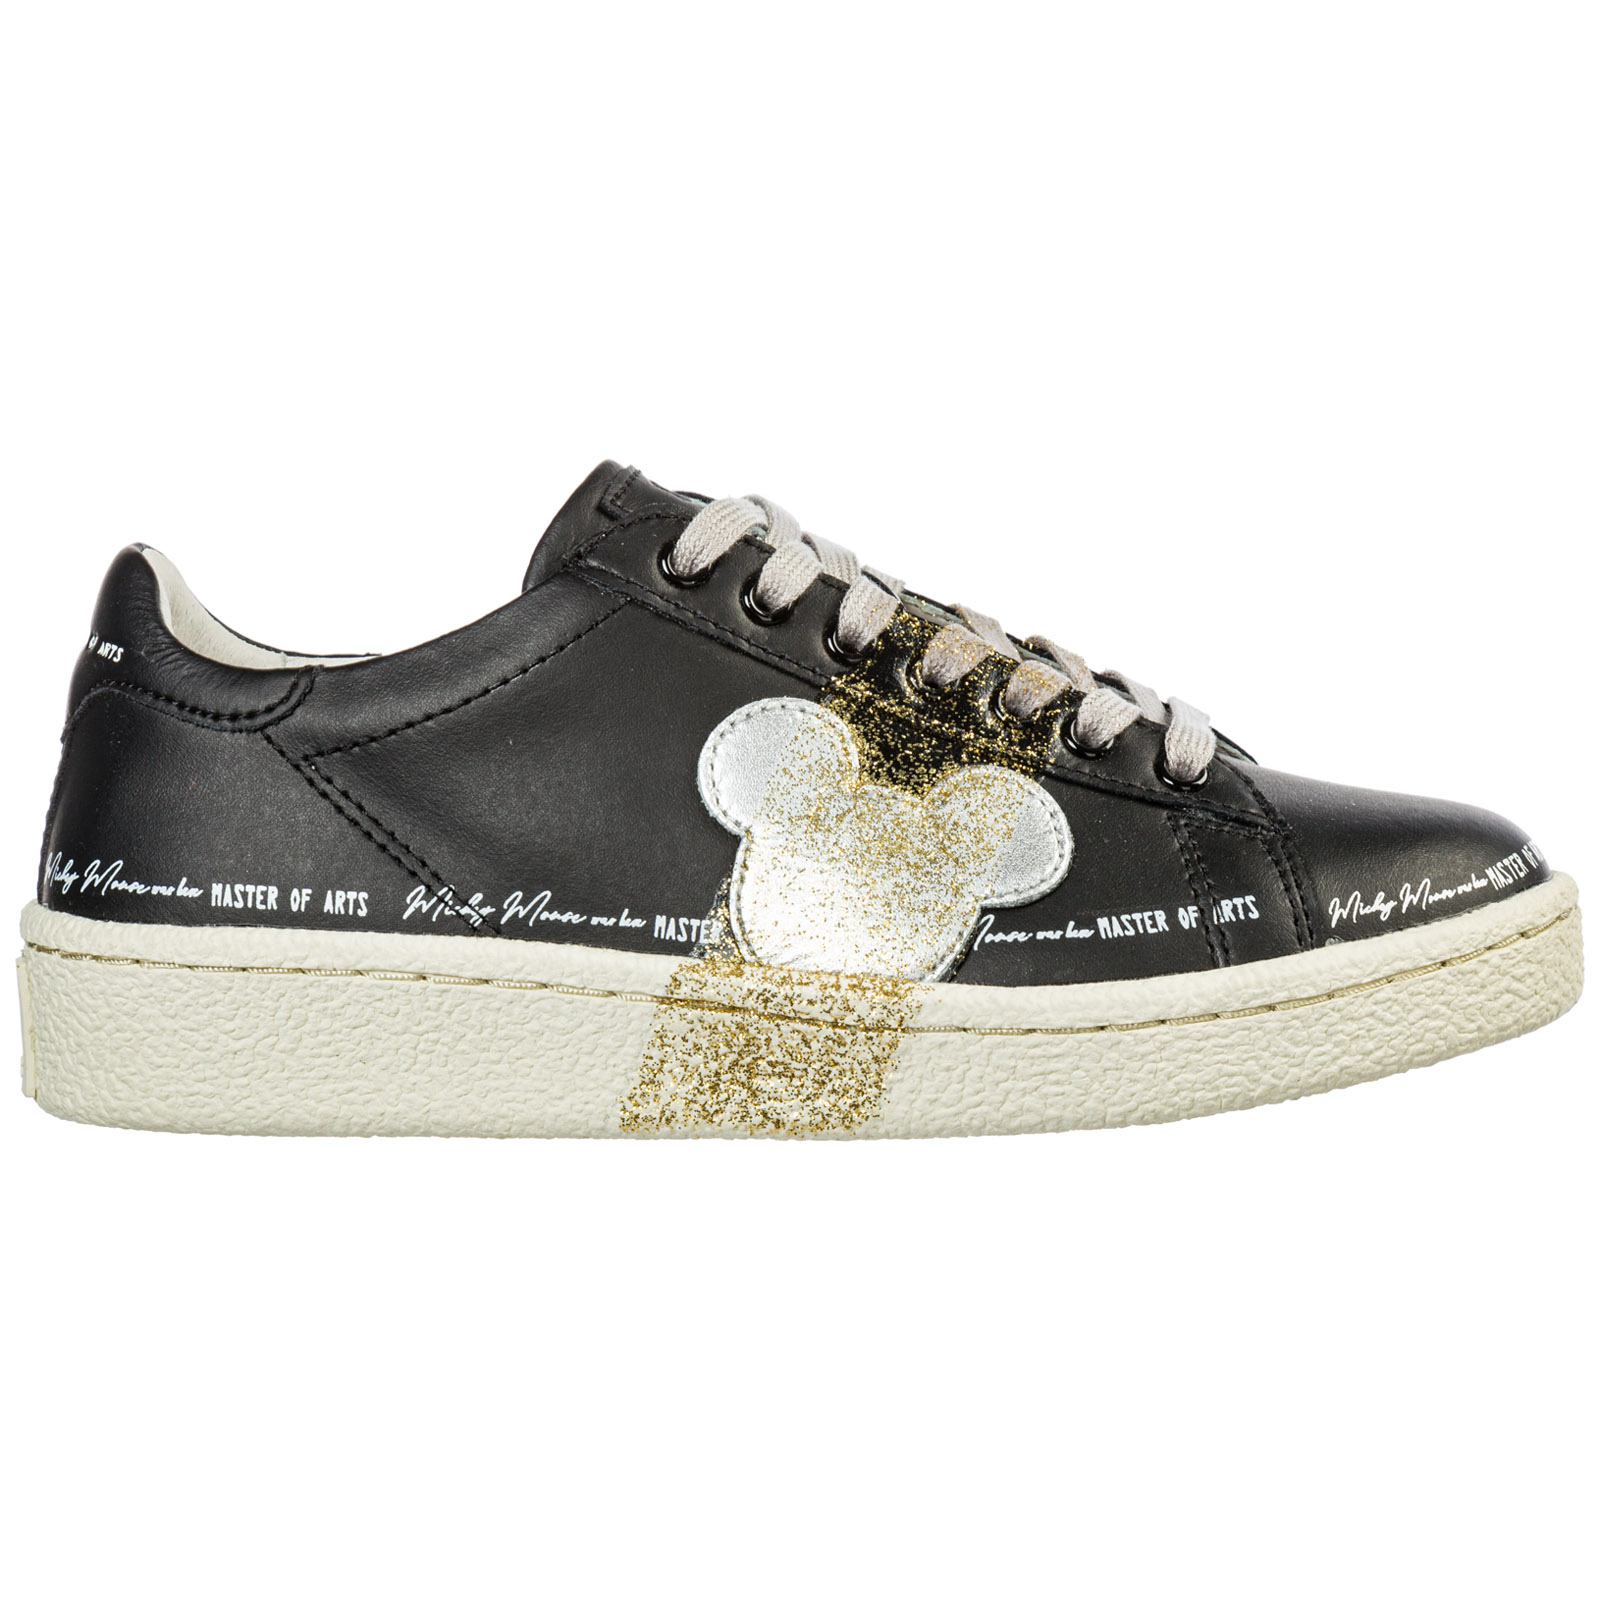 design senza tempo 0bd70 b9b1b Women's Shoes Leather Trainers Sneakers in Black